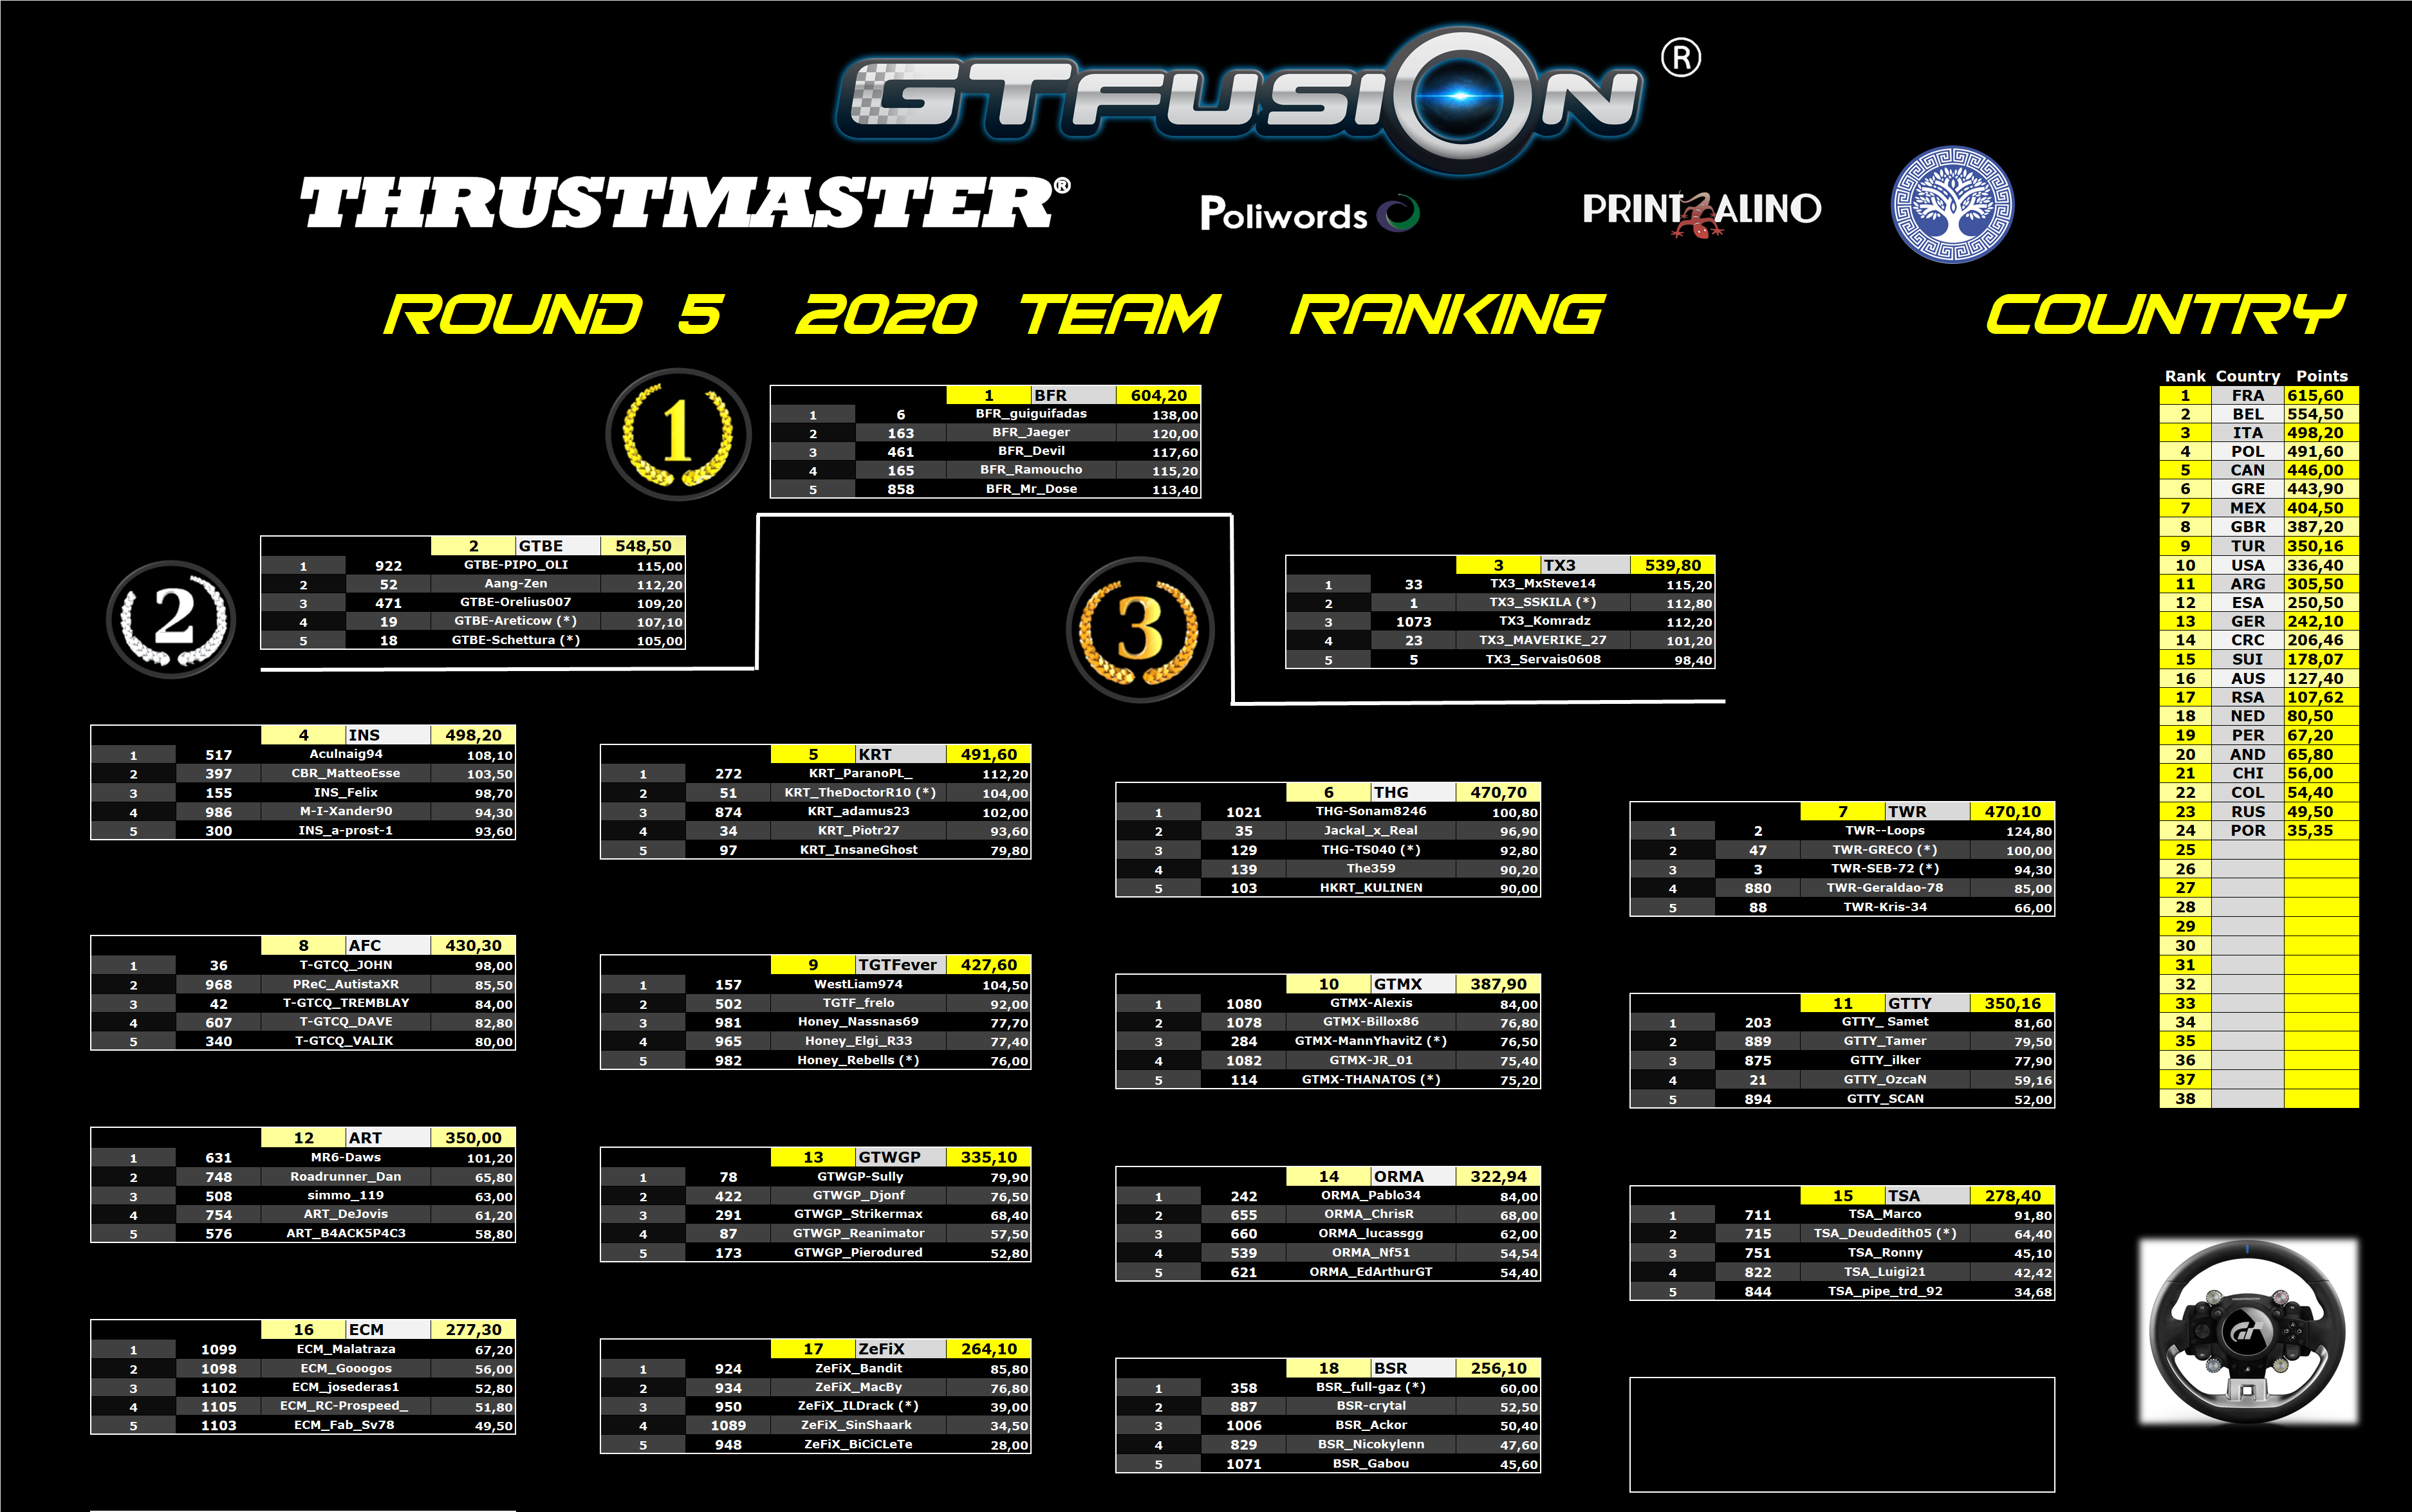 GTfusion GTSport World Championship Round 5 2020 Thrustmaster Team Results